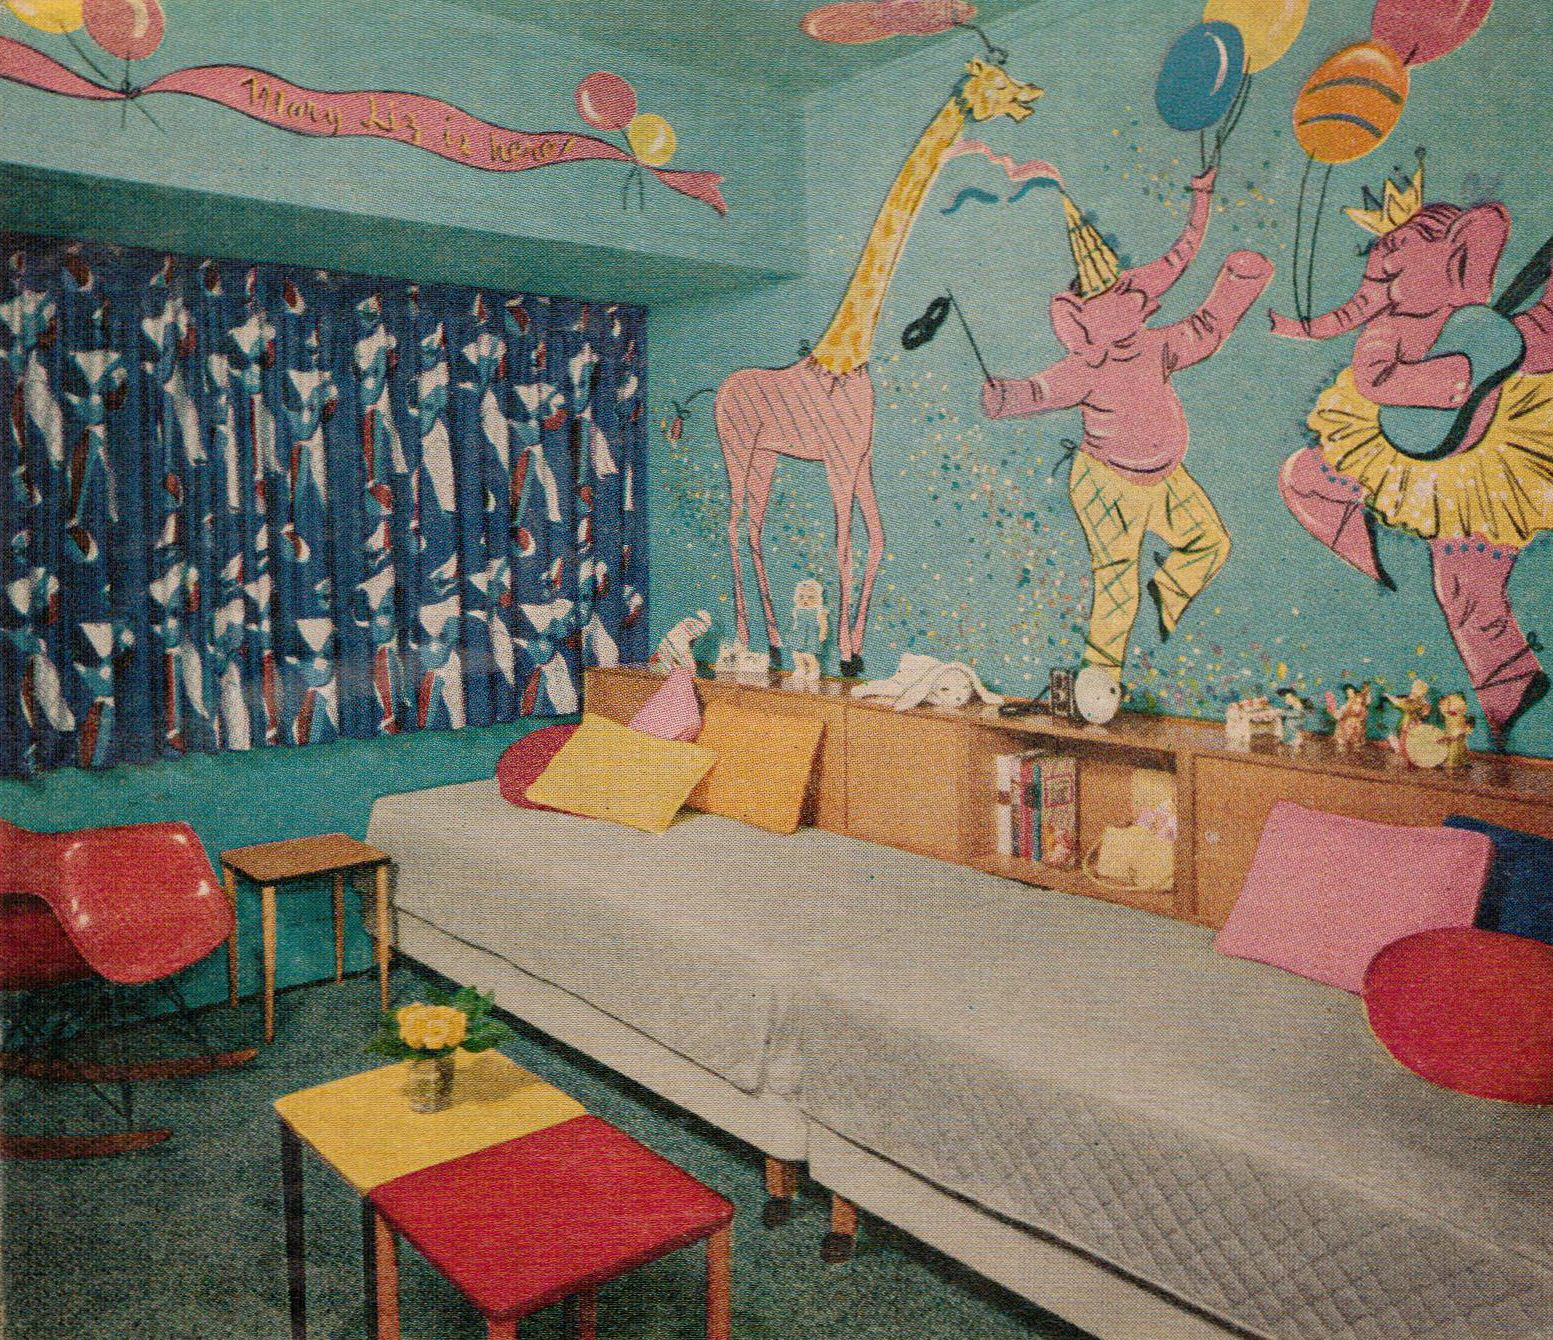 Mid Century Modern Kids Bedroom Ideas: Pin By ️Cathy Howson ️ On L♥VE The 50's In 2019